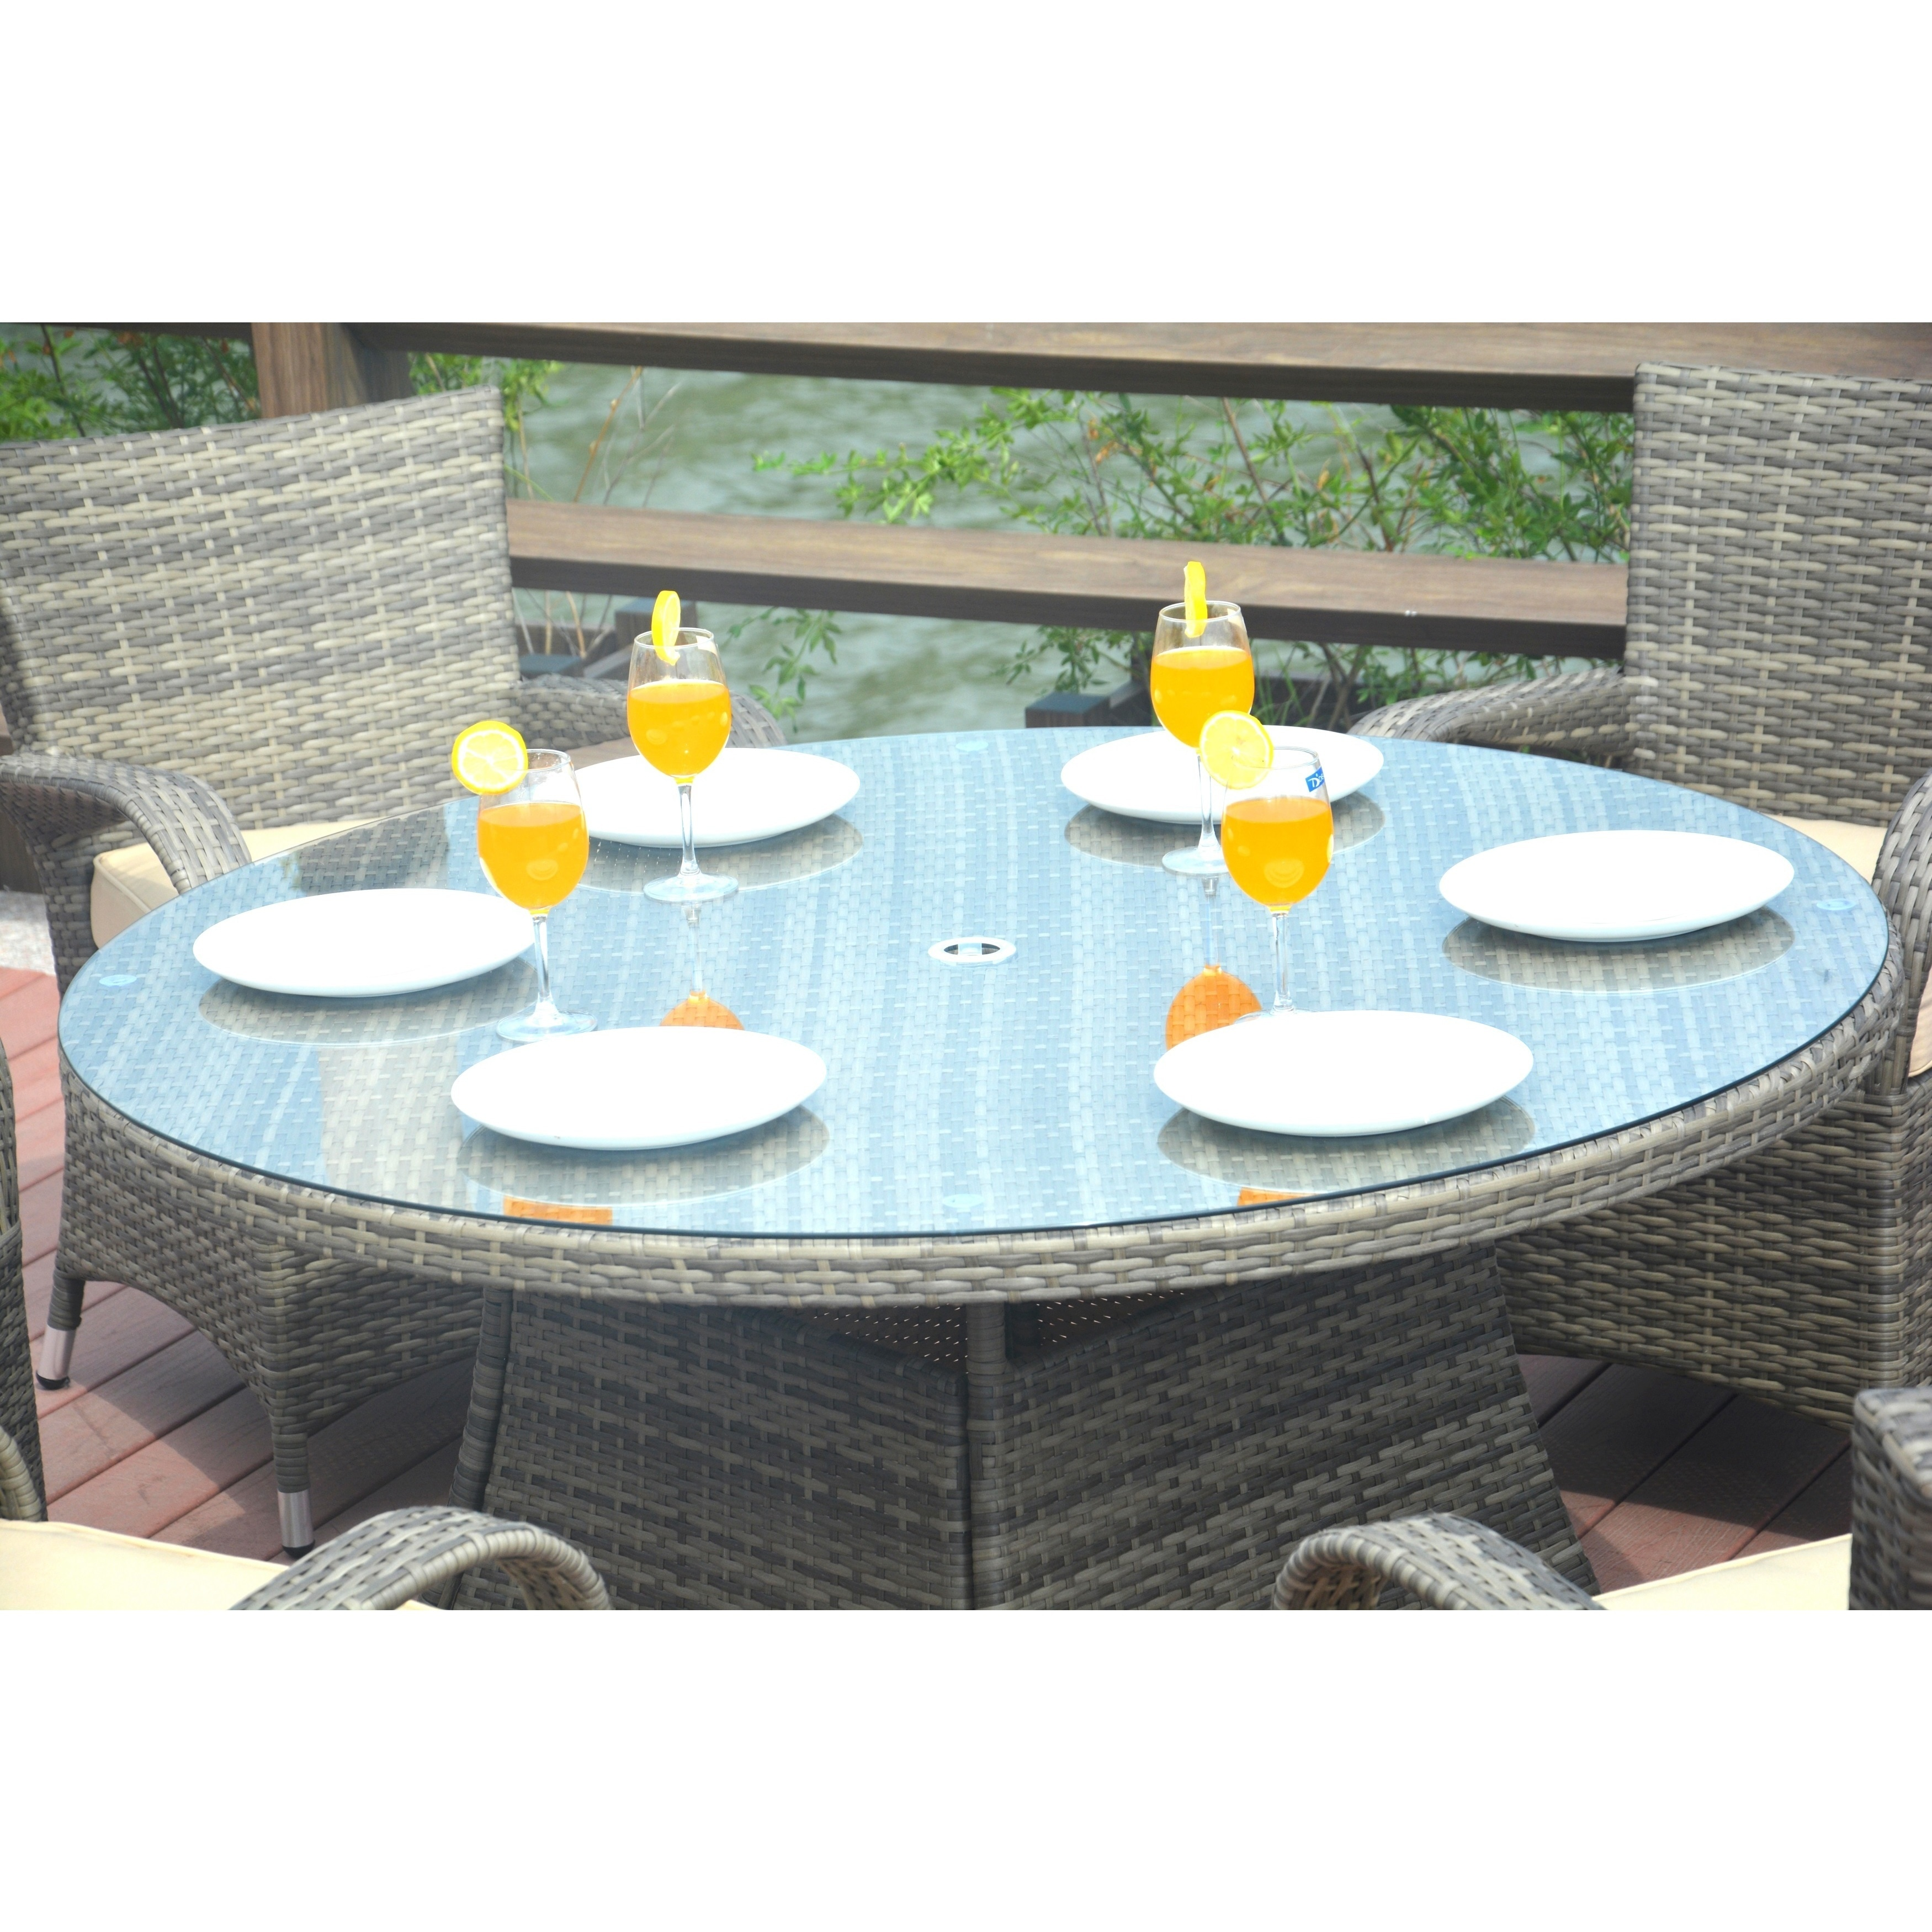 Shop Turin 8-piece Round Outdoor Patio Wicker Dining Set with 9.8 ft ...